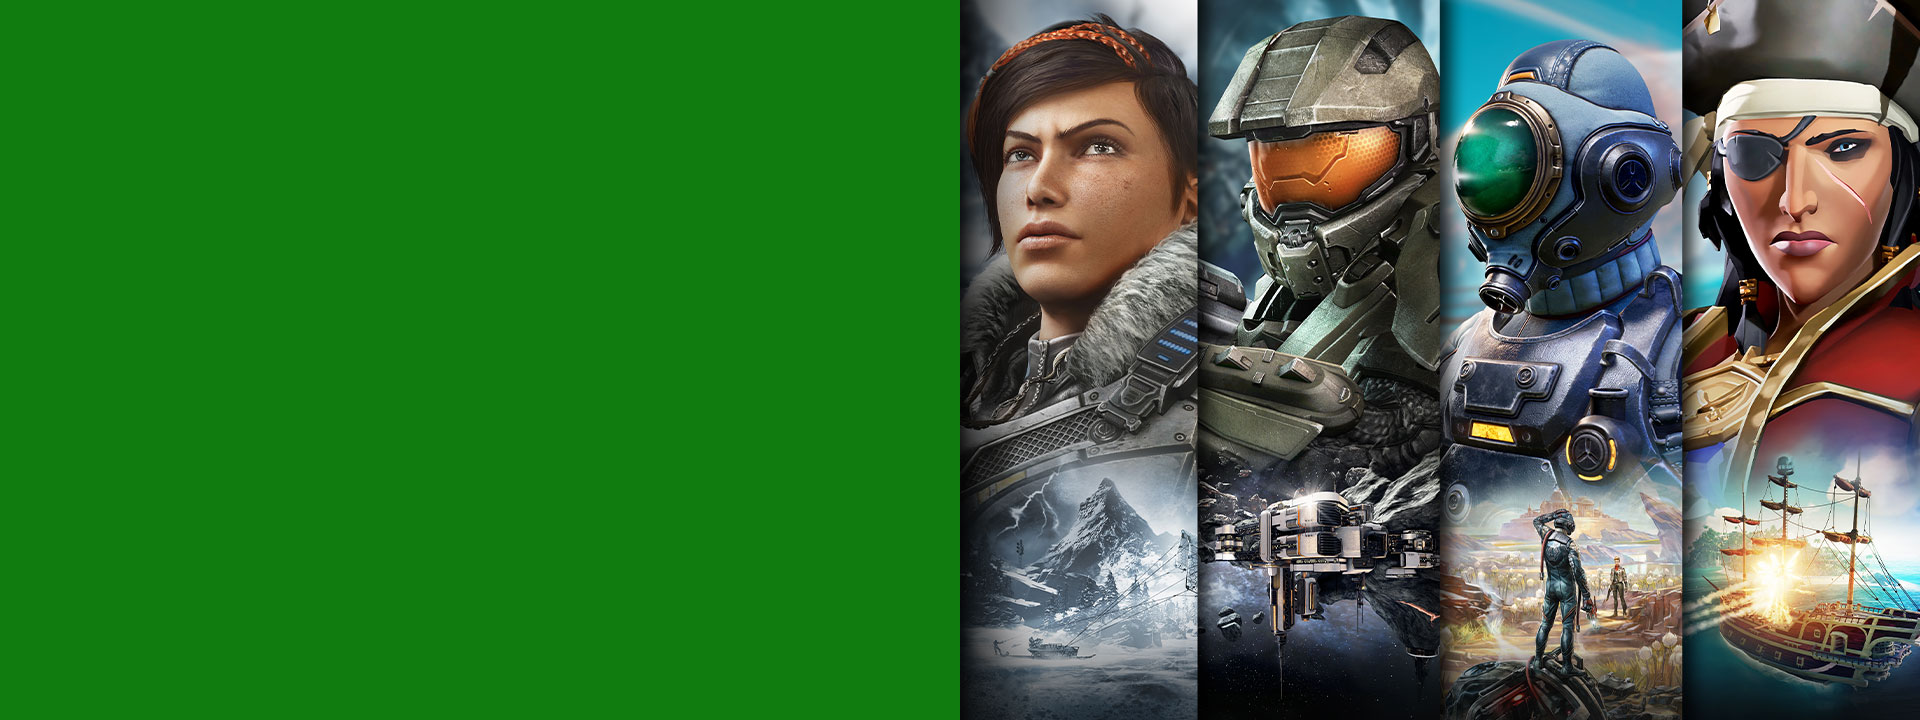 Subskrypcja Xbox Game Pass i postacie z gier Gears 5, Halo, The Outer Worlds i Sea of Thieves.